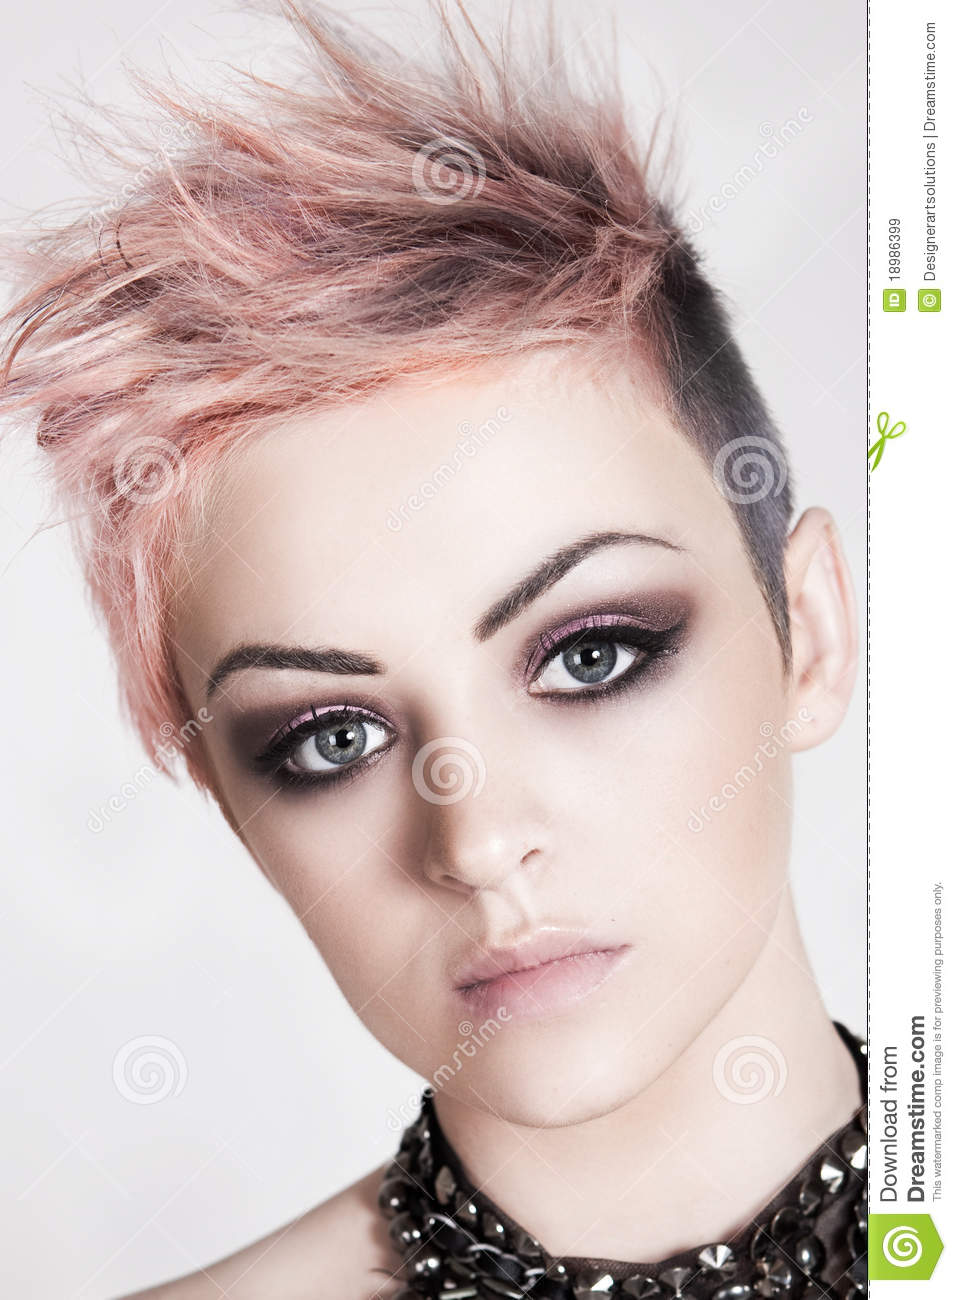 Attractive Young Woman With A Punk Hairstyle Stock Image Image Of